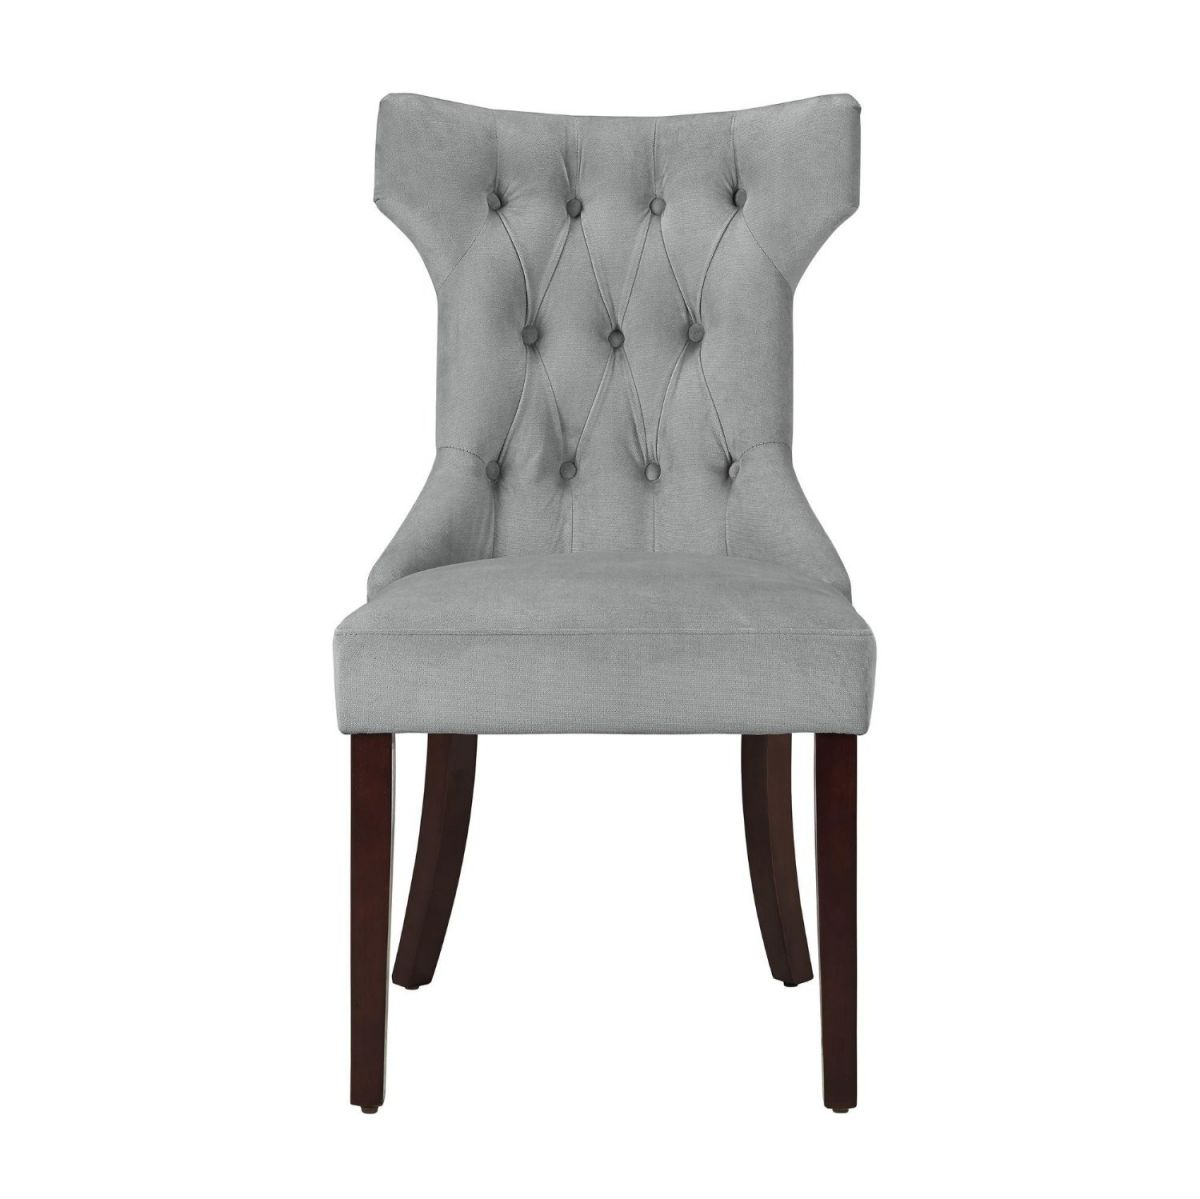 Dorel-Living-Clairborne-Tufted-Upholestered-Dining-Chair-Gray-Set-of-2